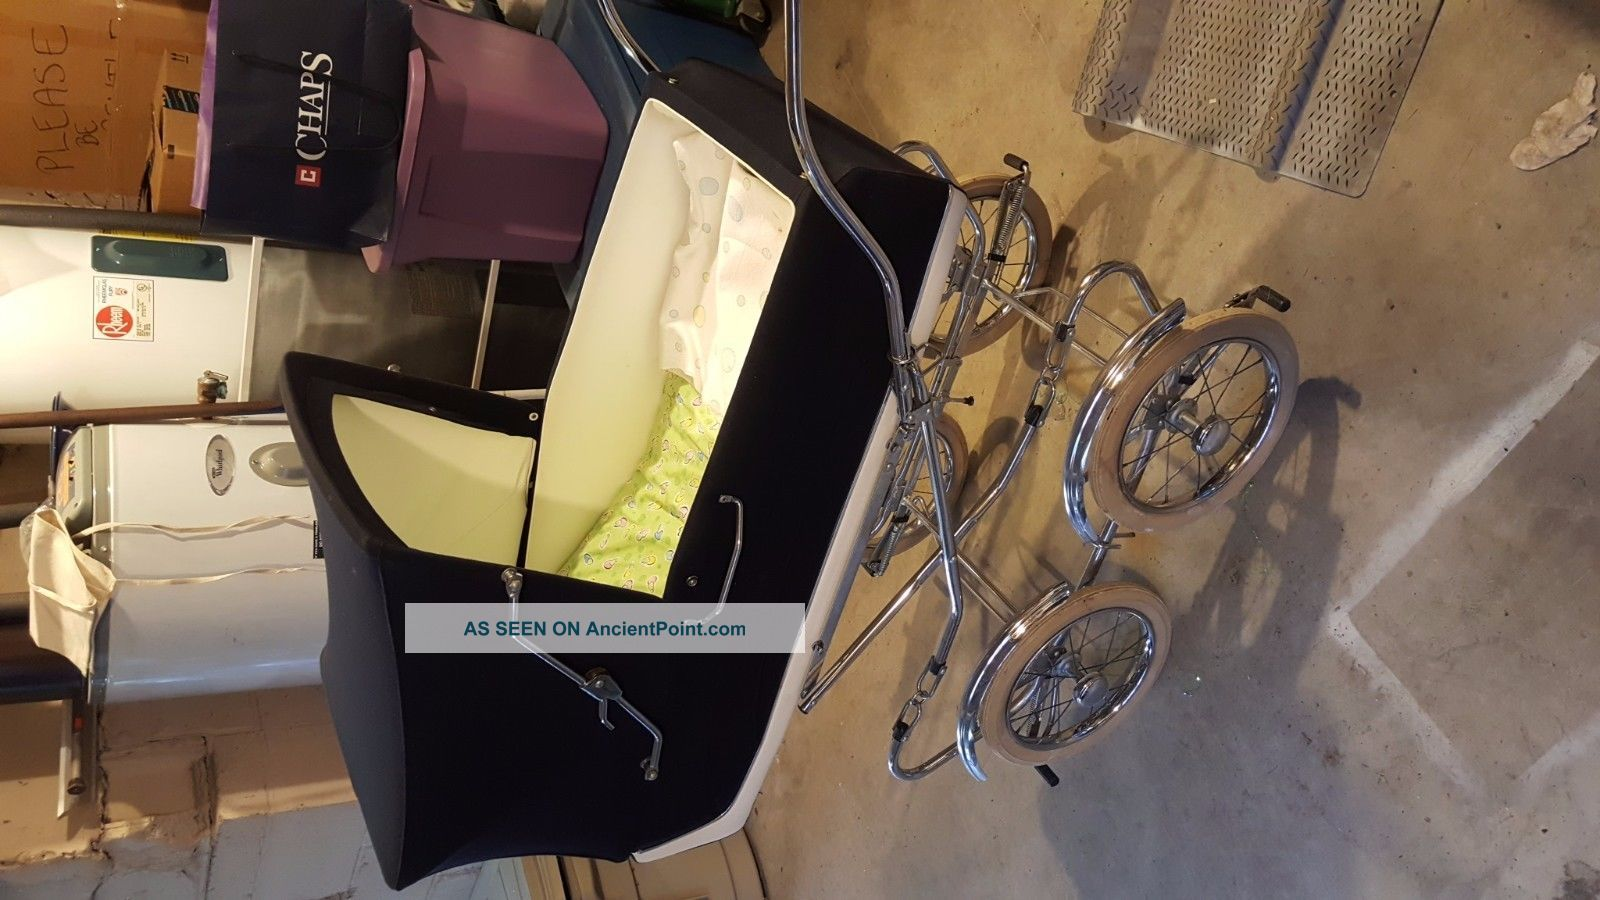 Vintage 1970 ' S Blue Perego Pram Carriage Stroller Made In Italy Cond Baby Carriages & Buggies photo